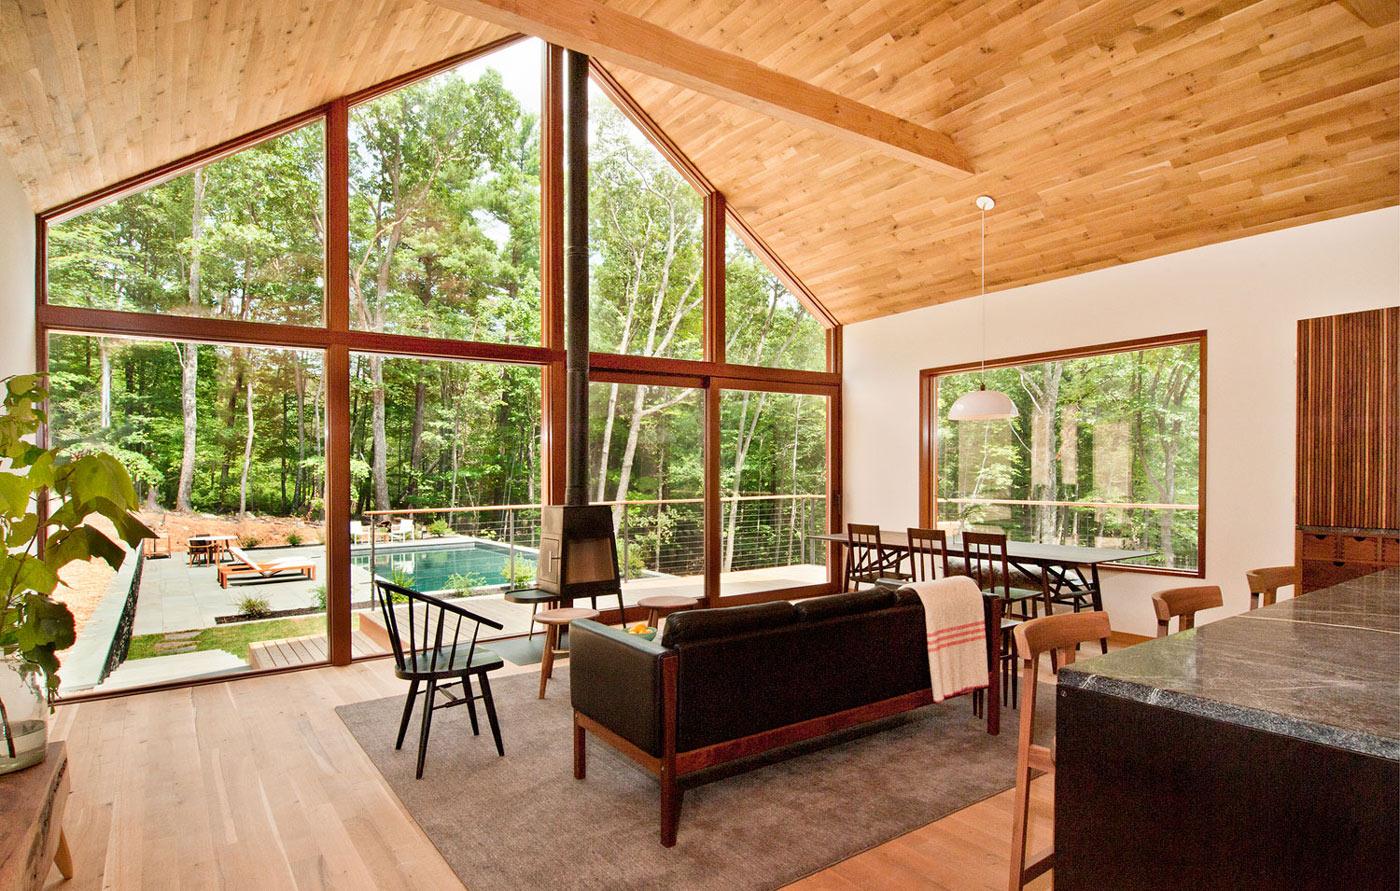 Fireplace, Vaulted Ceiling, Open Plan Living Space, Wood and Glass House in Kerhonkson